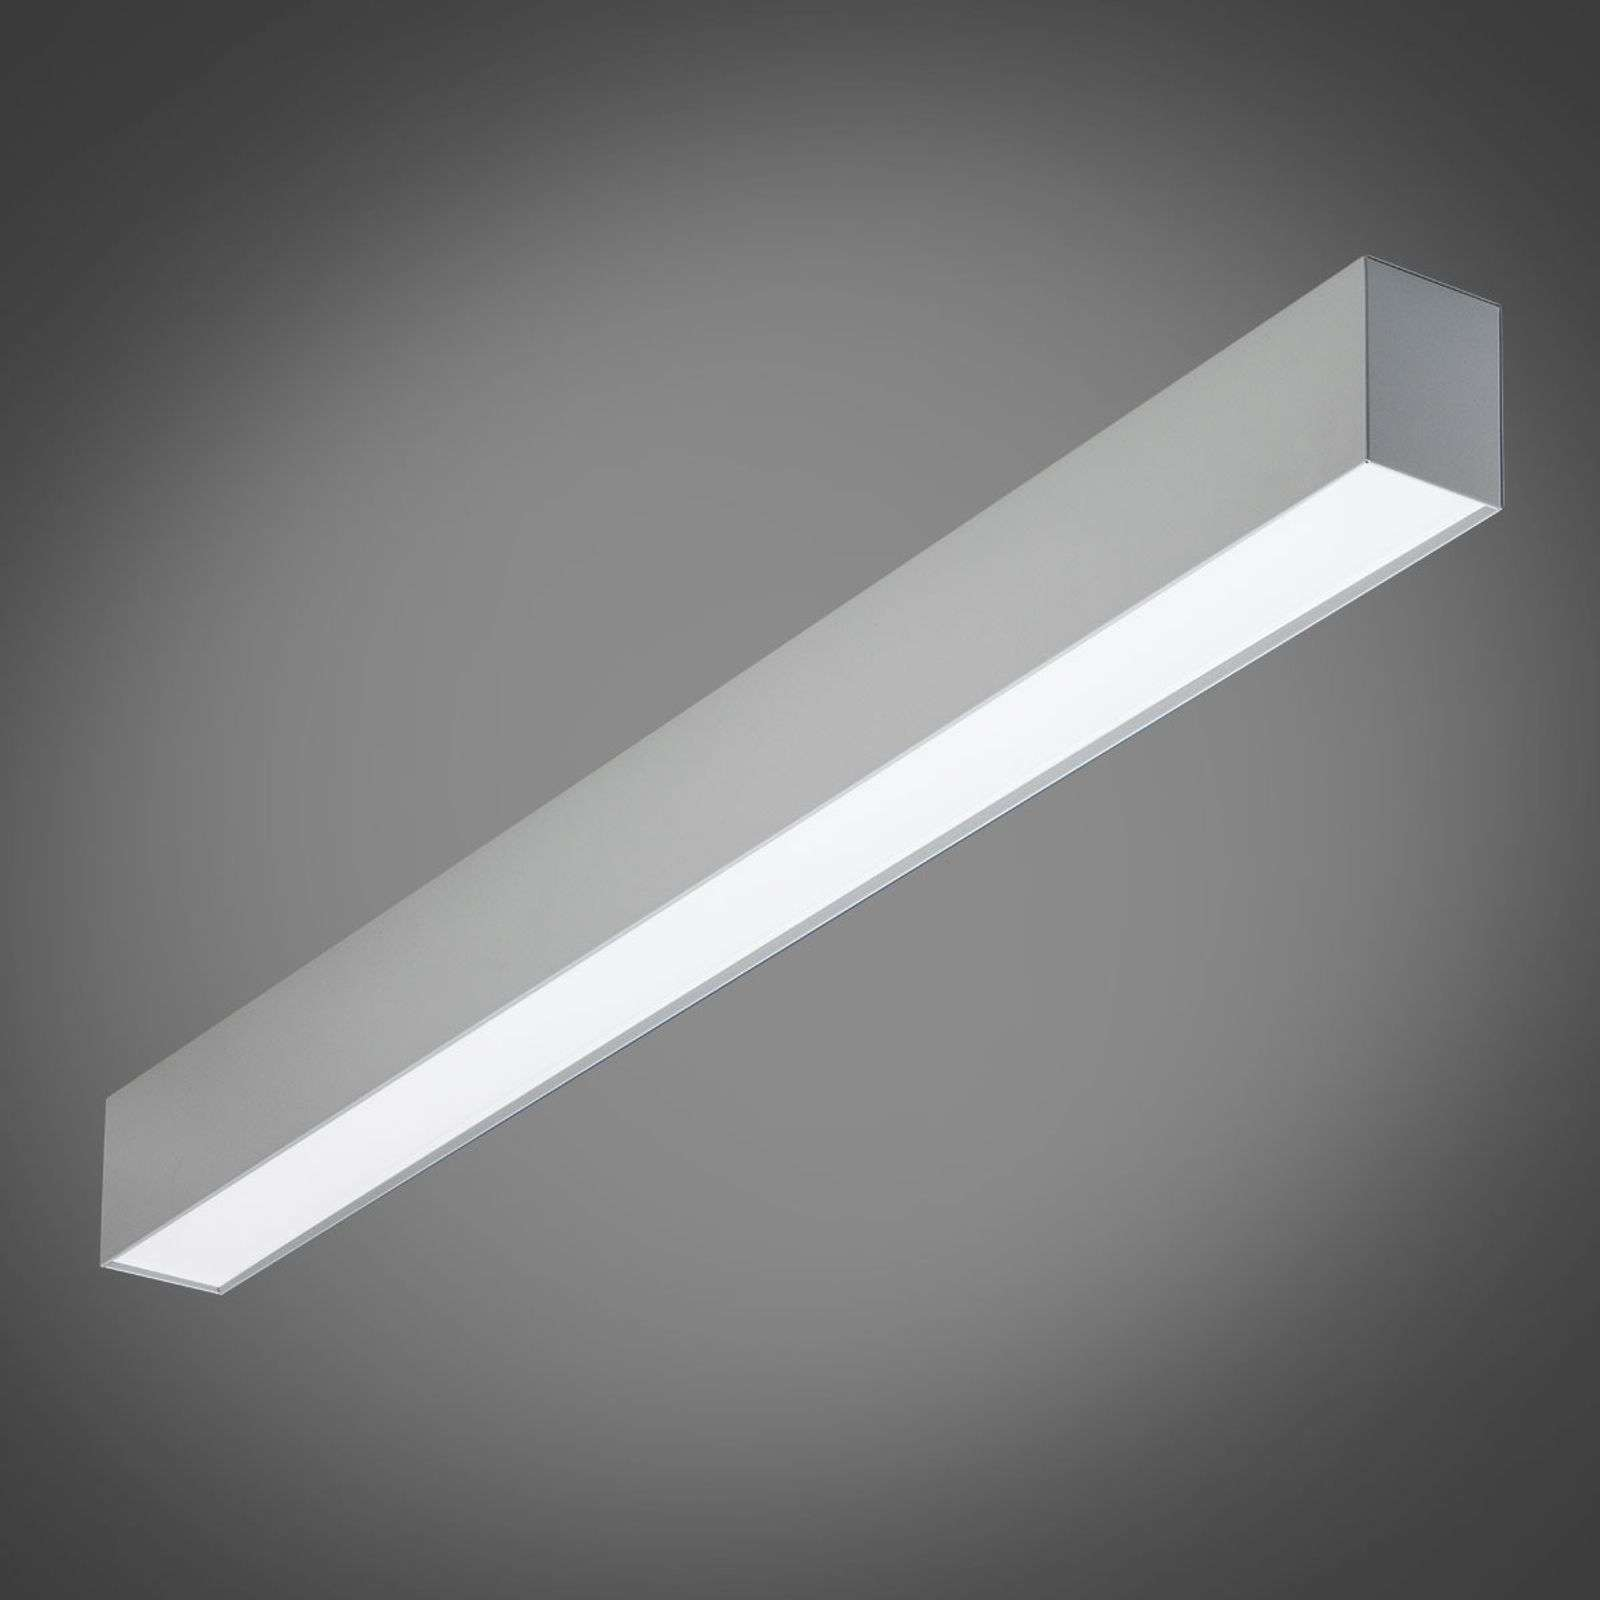 Efficiente applique a LED LIPW075, 4000 K